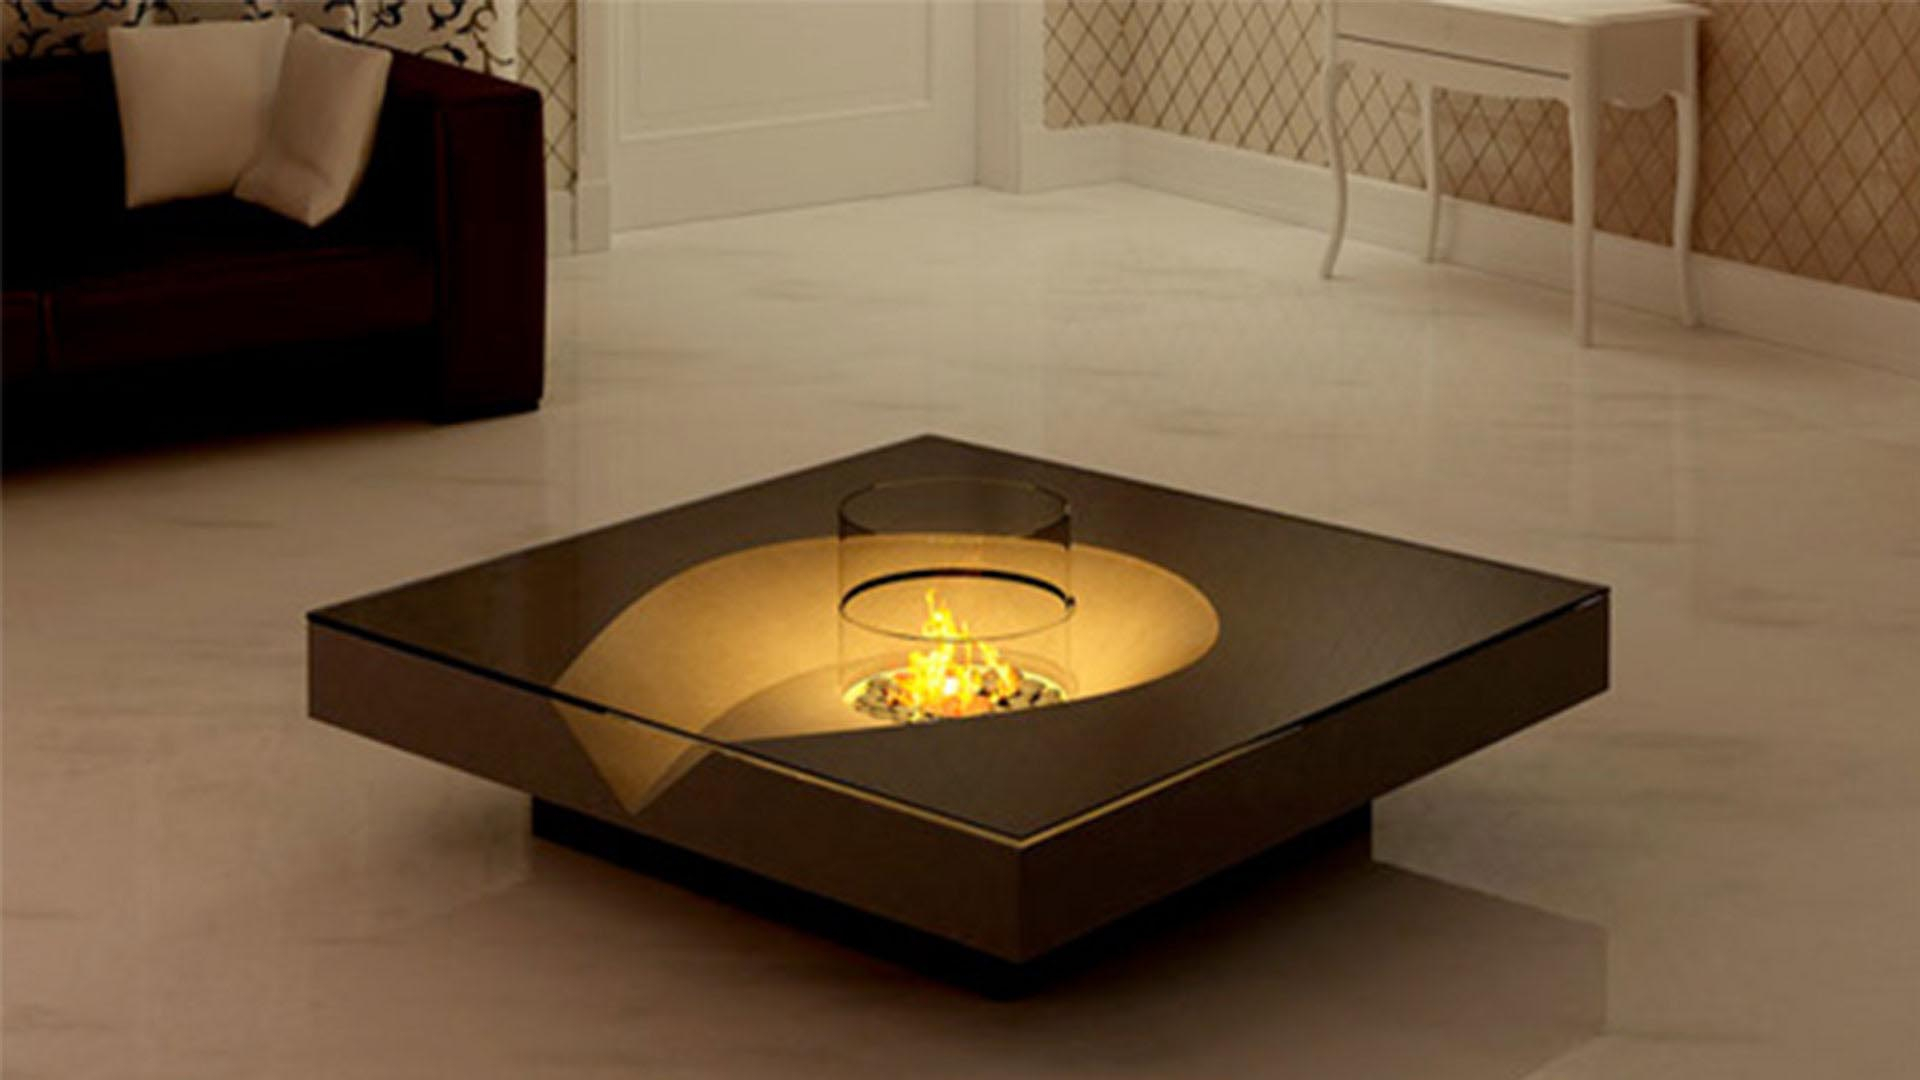 Indoor Fire Pit Coffee Table Photos Table And Pillow Weirdmonger throughout sizing 1920 X 1080